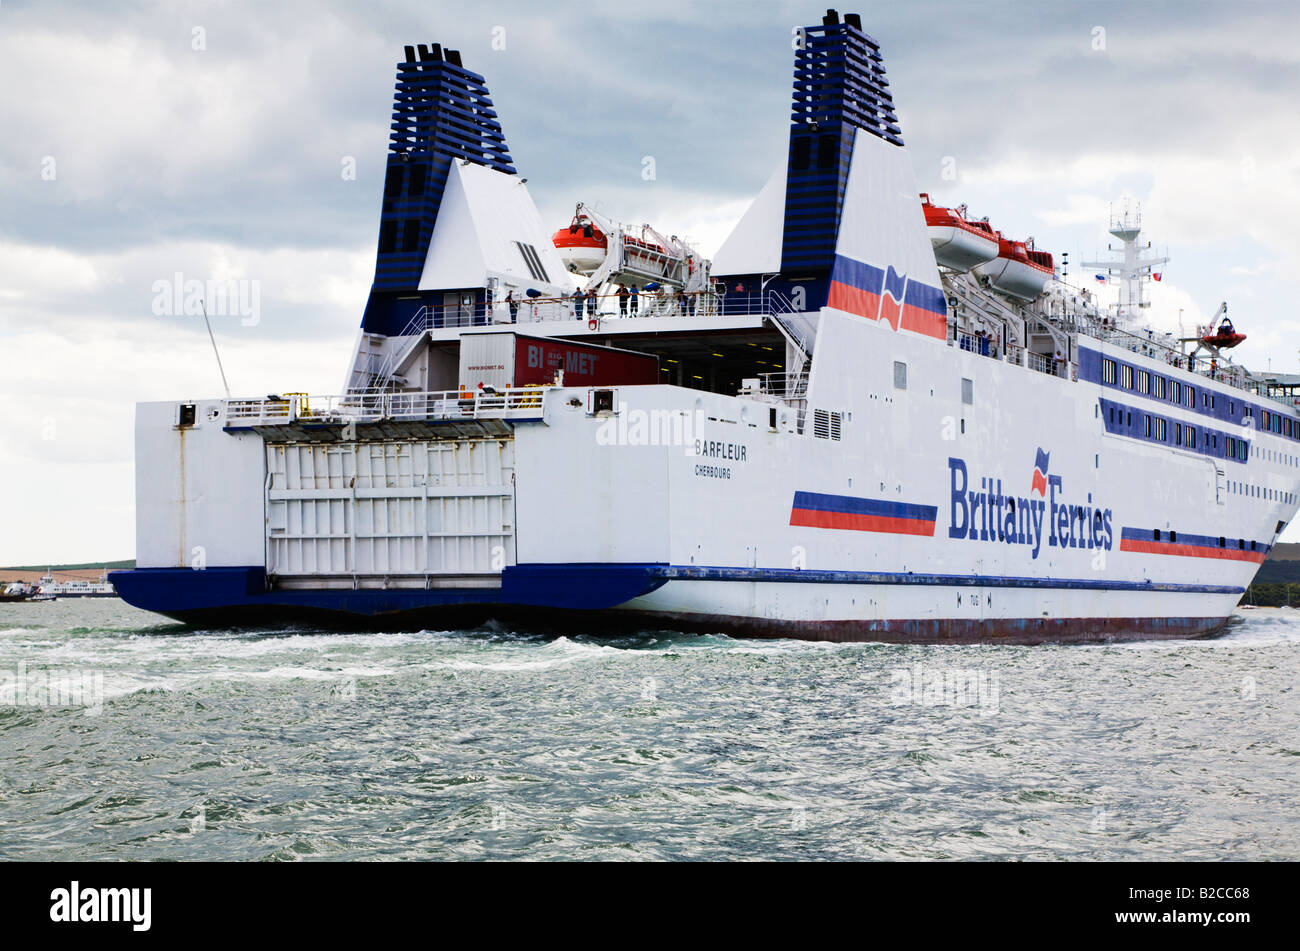 Barfleur cruise ferry ship information brittany ferries - Brittany Ferries Ship Barfleur Leaving Poole Harbour Dorset For English Channel Crossing To France